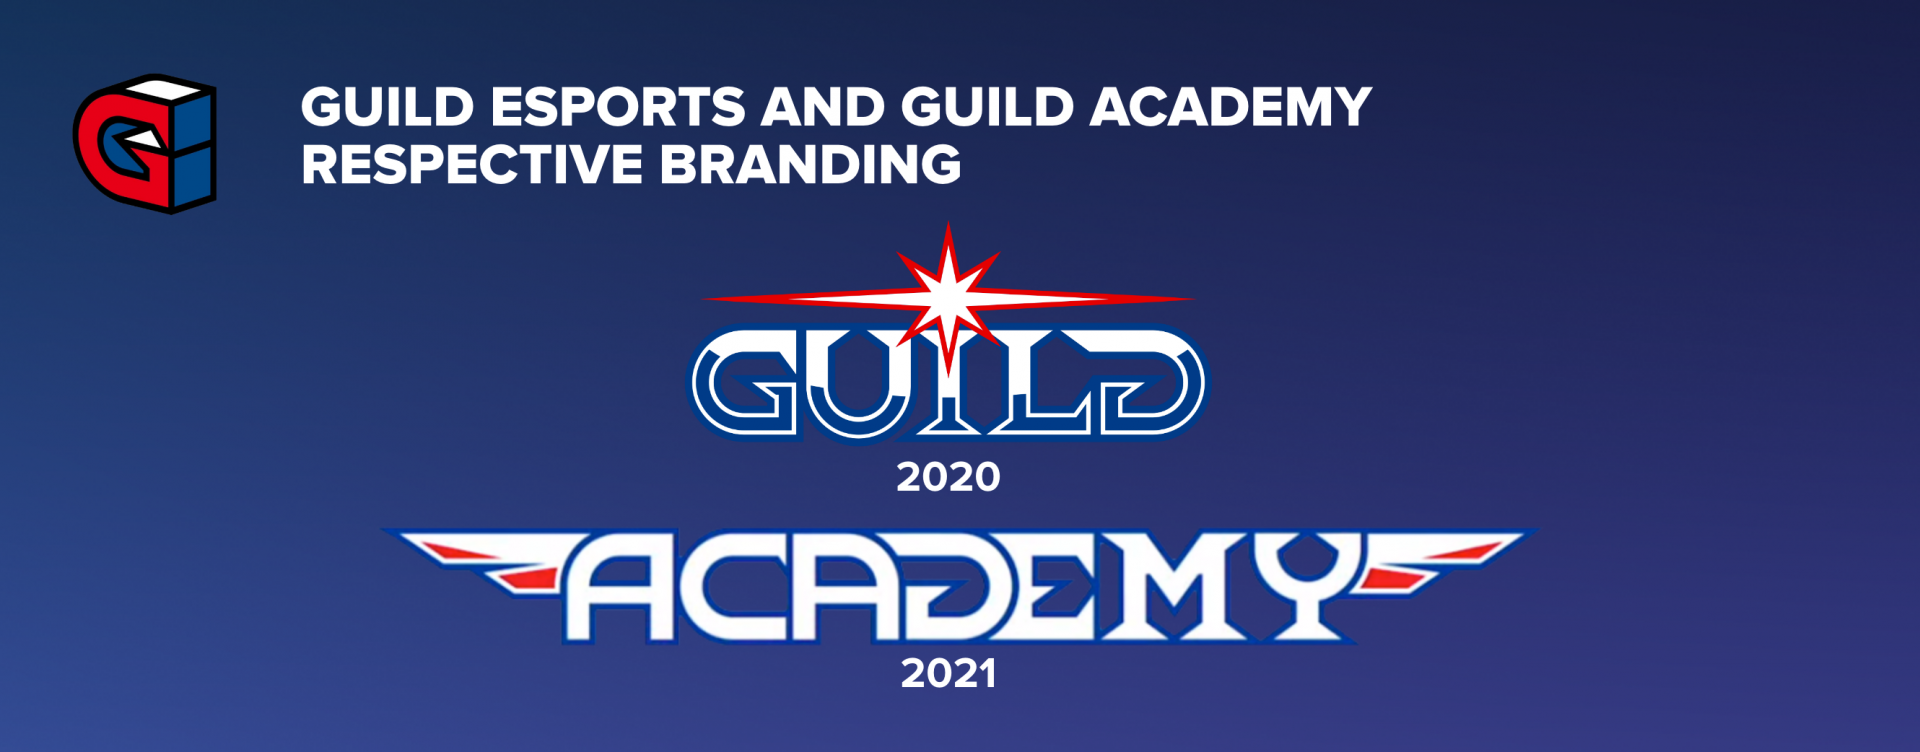 GUILD ESPORTS AND GUILD ACADEMY RESPECTIVE BRANDING